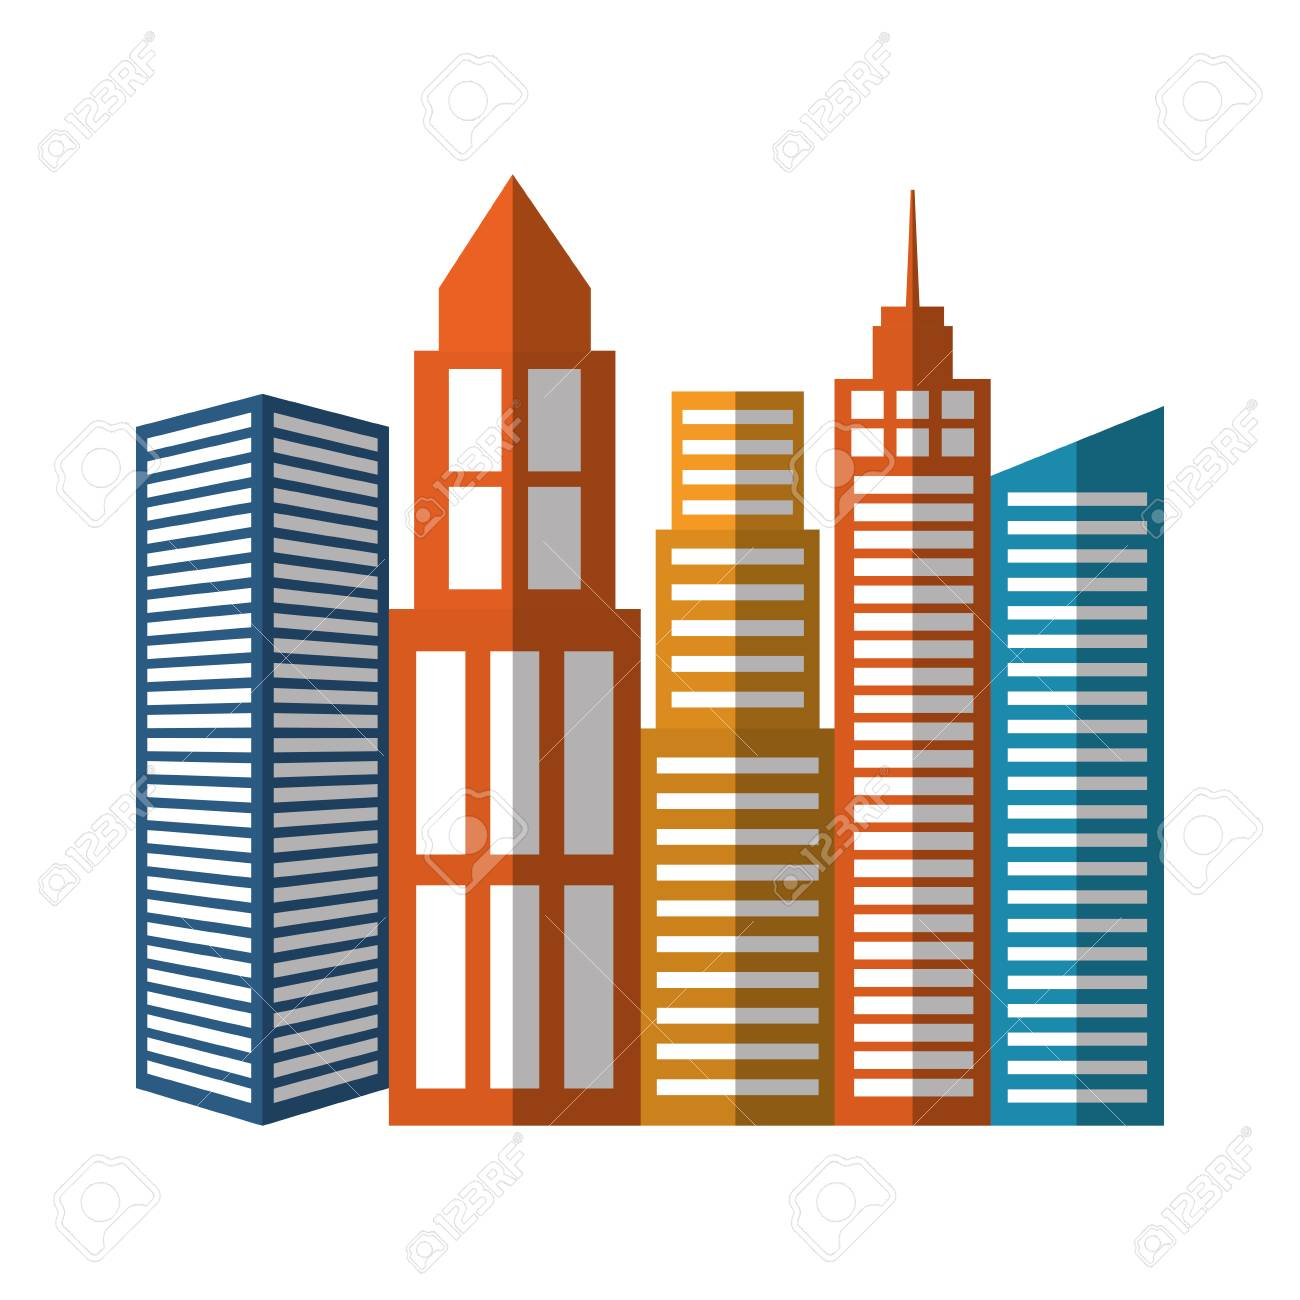 city buildings icon over white background colorful design vector rh 123rf com victor building dc victor building camden nj